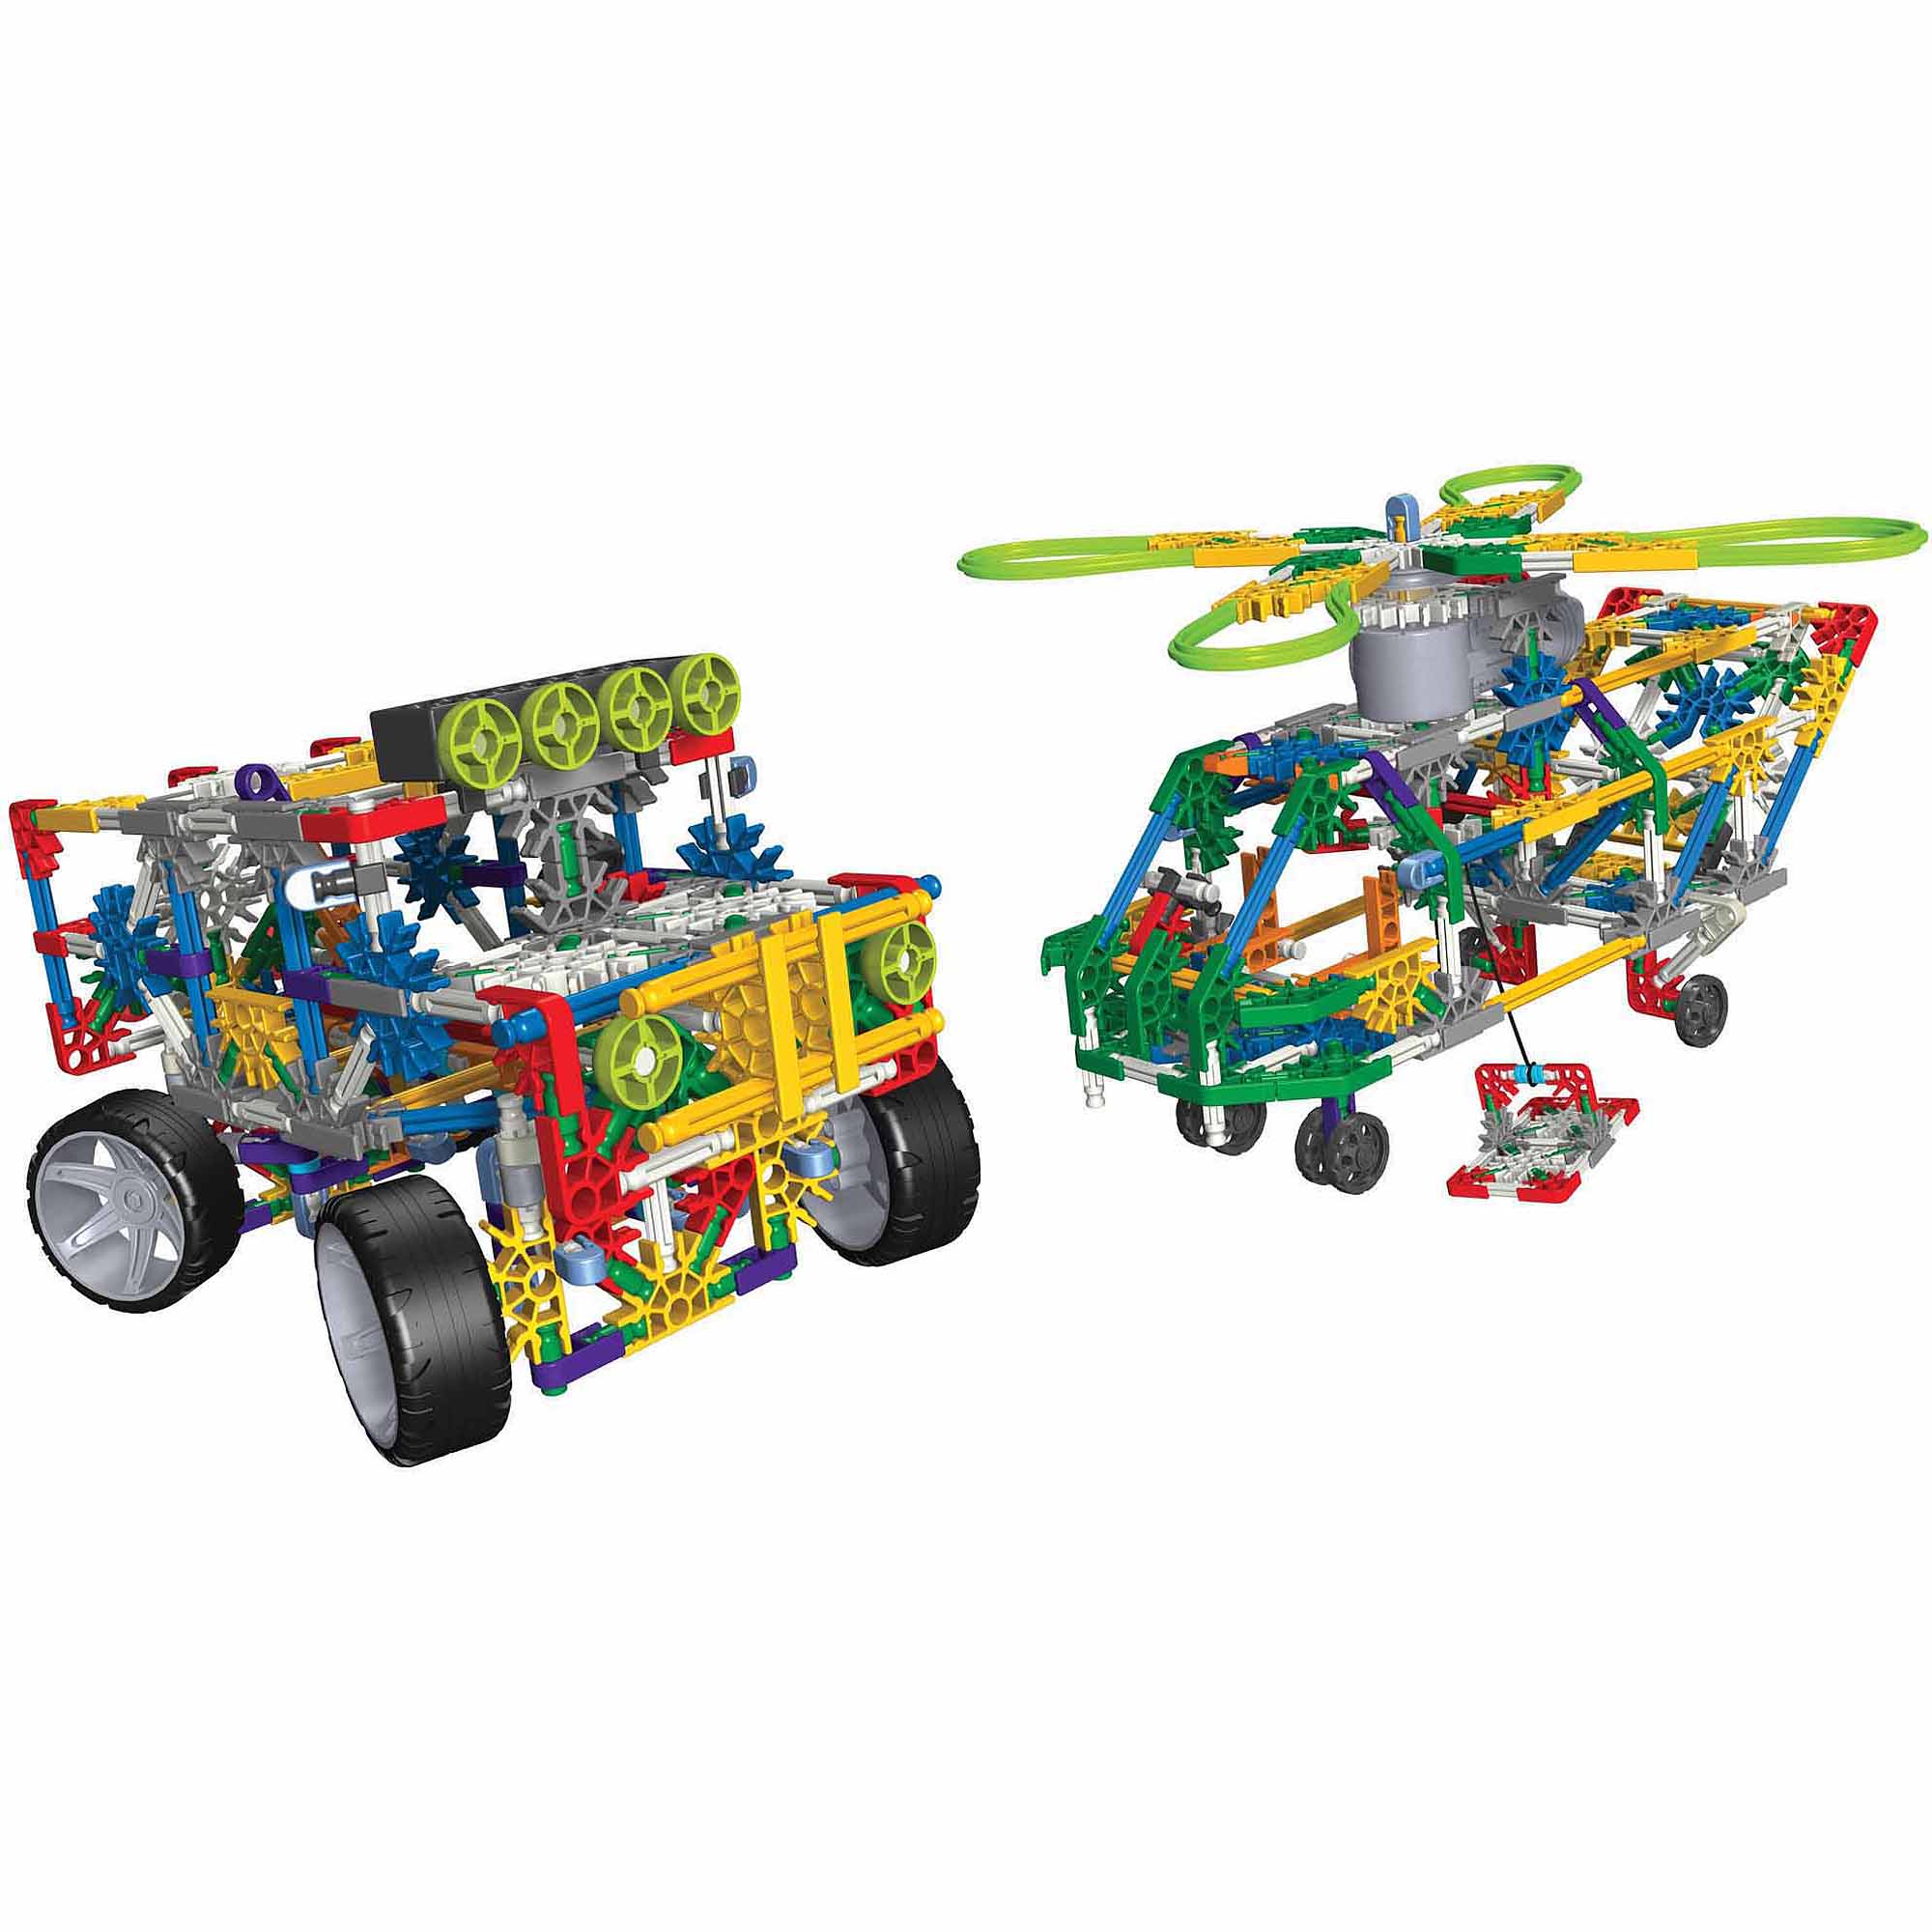 K'NEX Bundle: Transport Chopper and 4 Wheel Drive Truck Building Sets